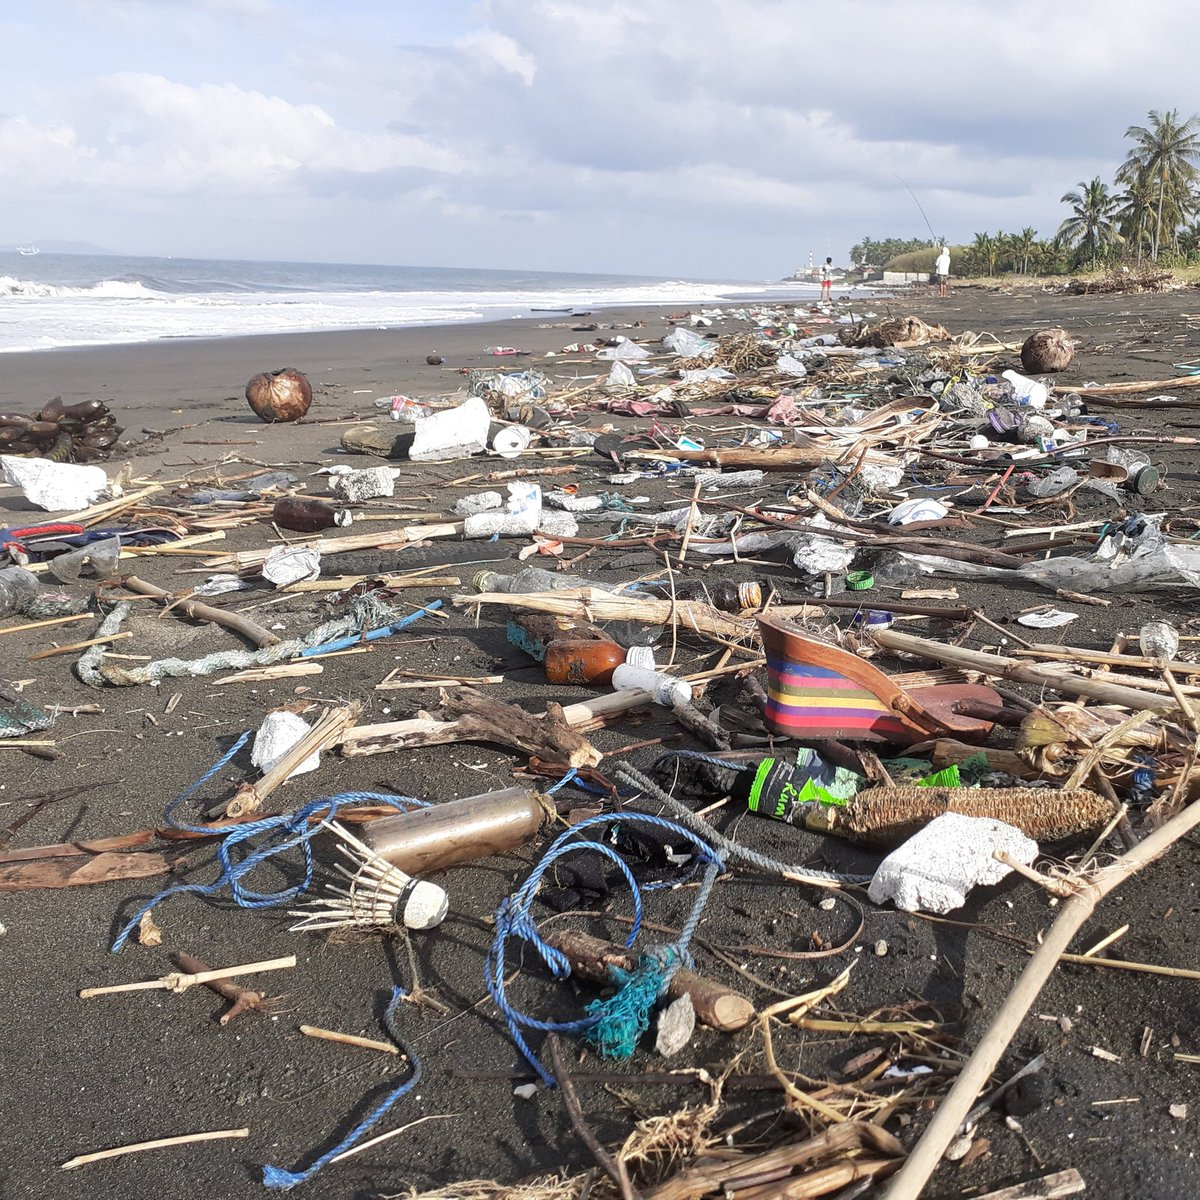 Before & After. Our Jembrana Beach Team recently recovered over 860 pounds of trash from Ketapang Beach in Bali pushing us past 9,420,115 total pounds across all of our cleanup divisions.